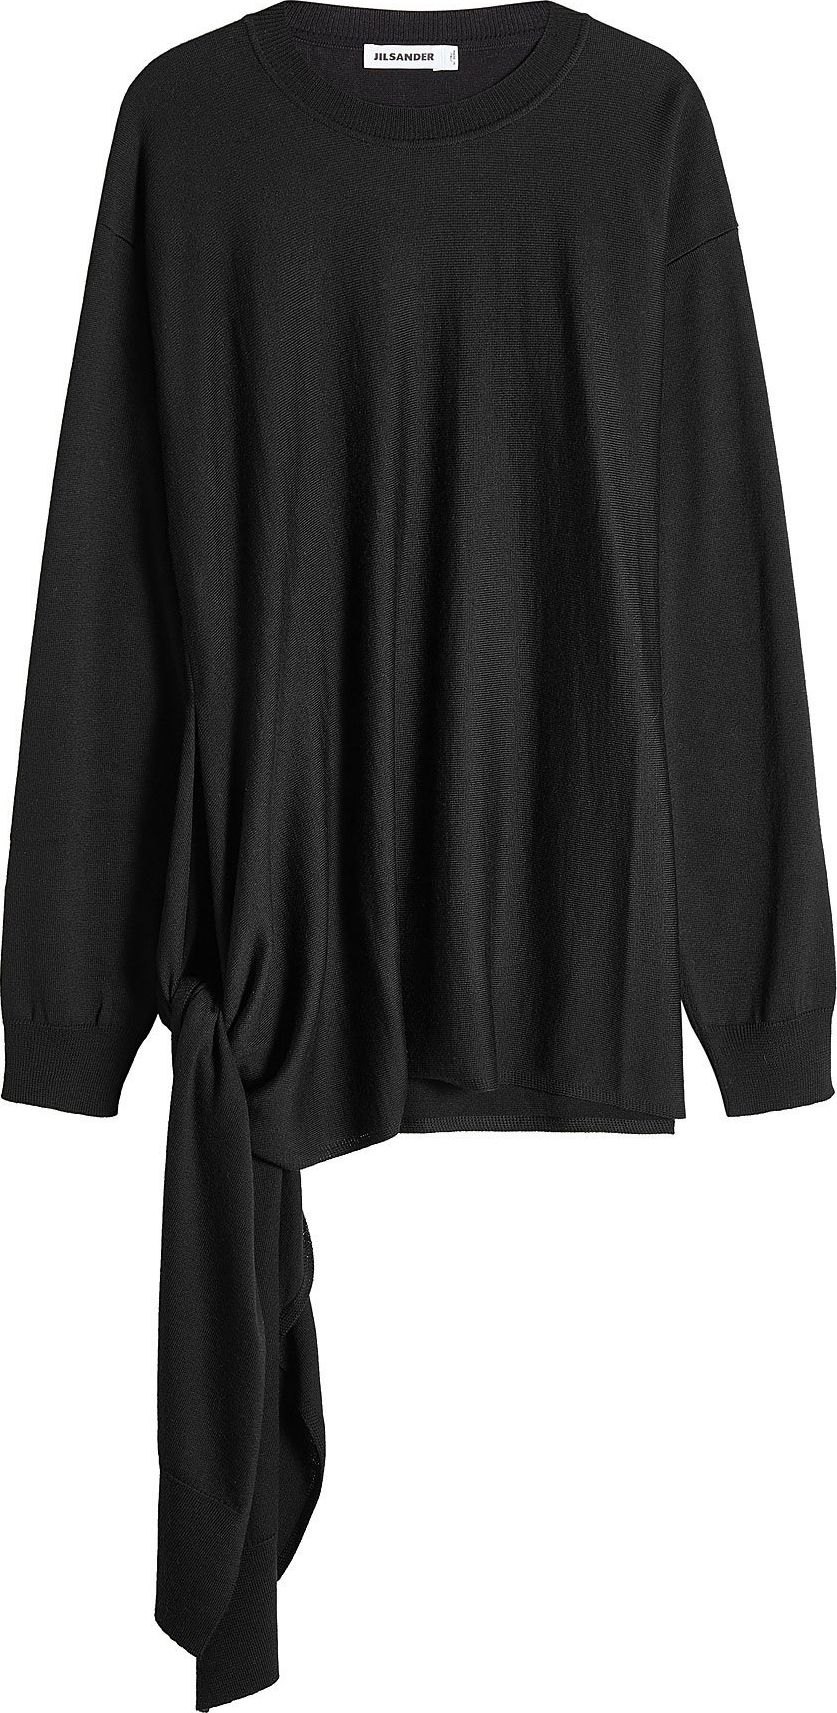 Jil Sander - Virgin Wool Side Tie Pullover